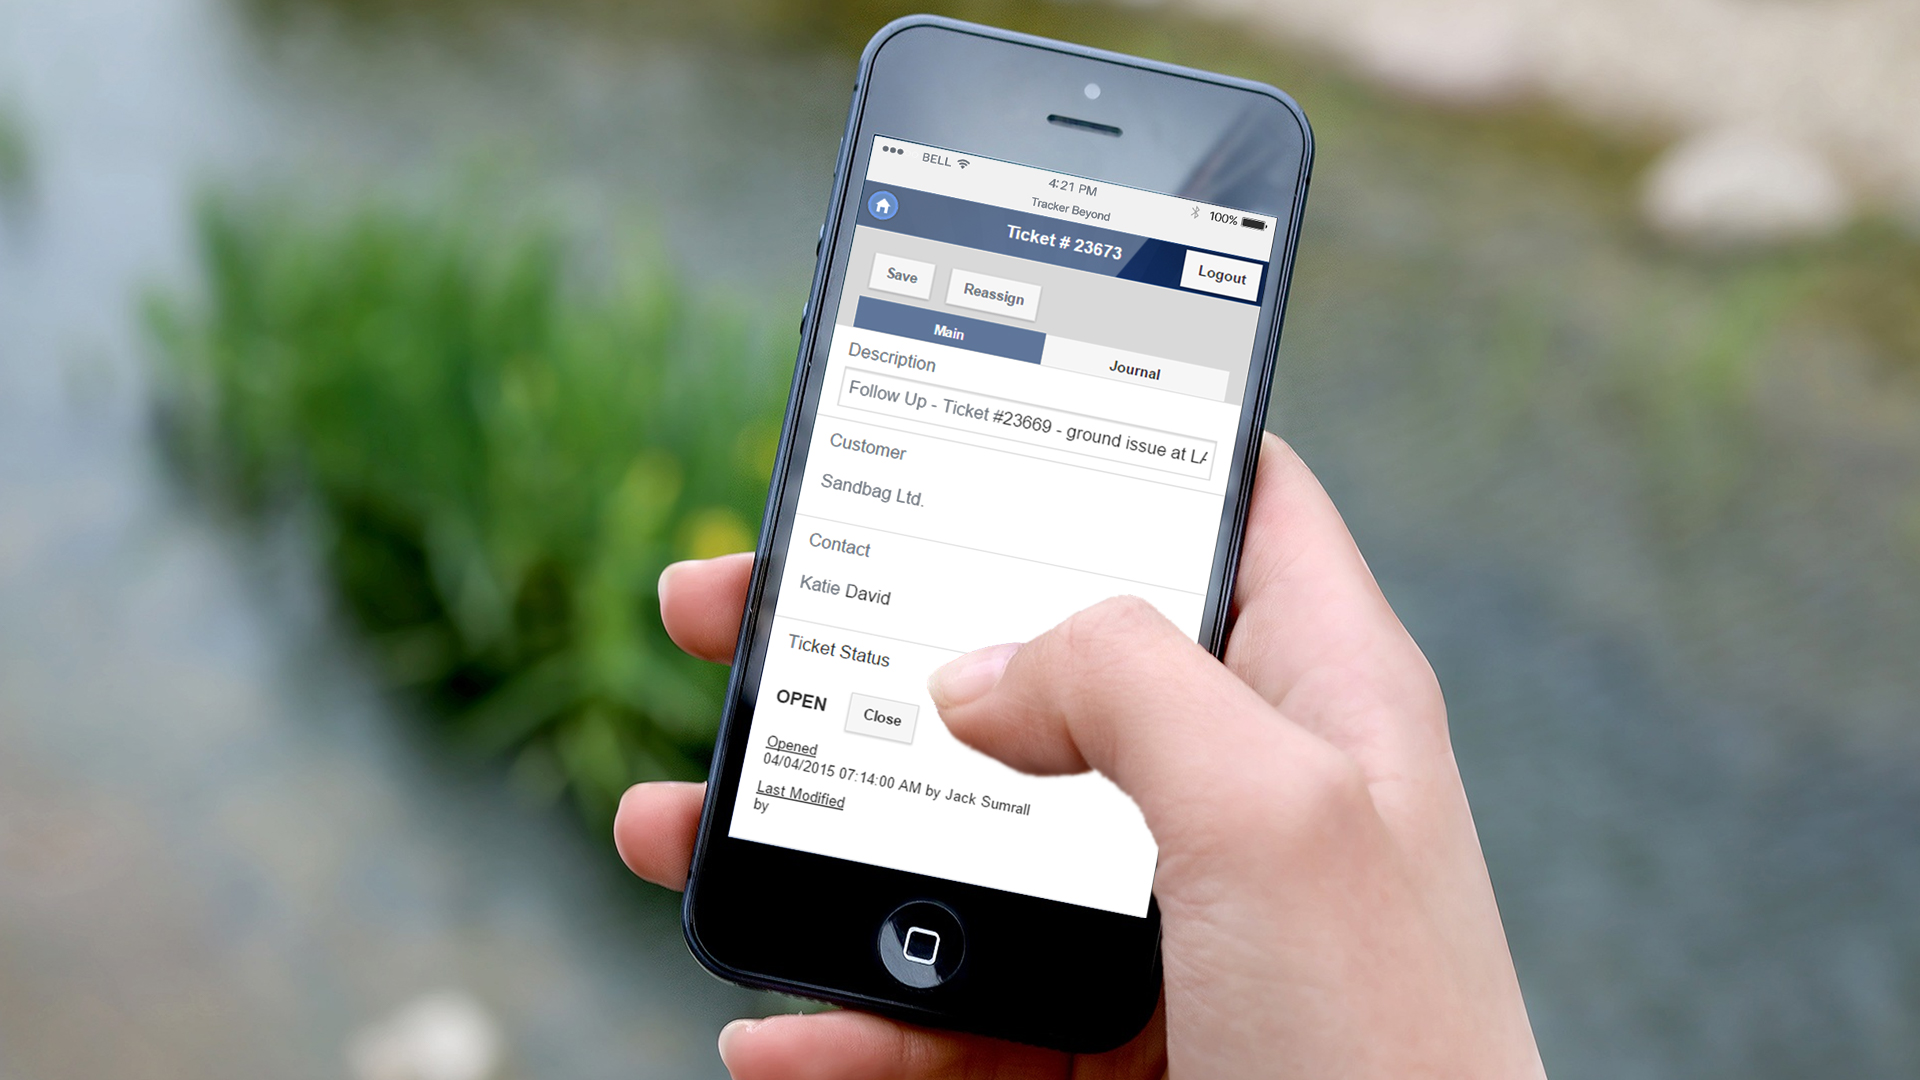 Take the power of Tracker on the go with Tracker Mobile. Shown here working on an iPhone. Tracker Mobile is a powerful web app that you can access from anywhere. Enjoy the features of Tracker in the palm of your hand.